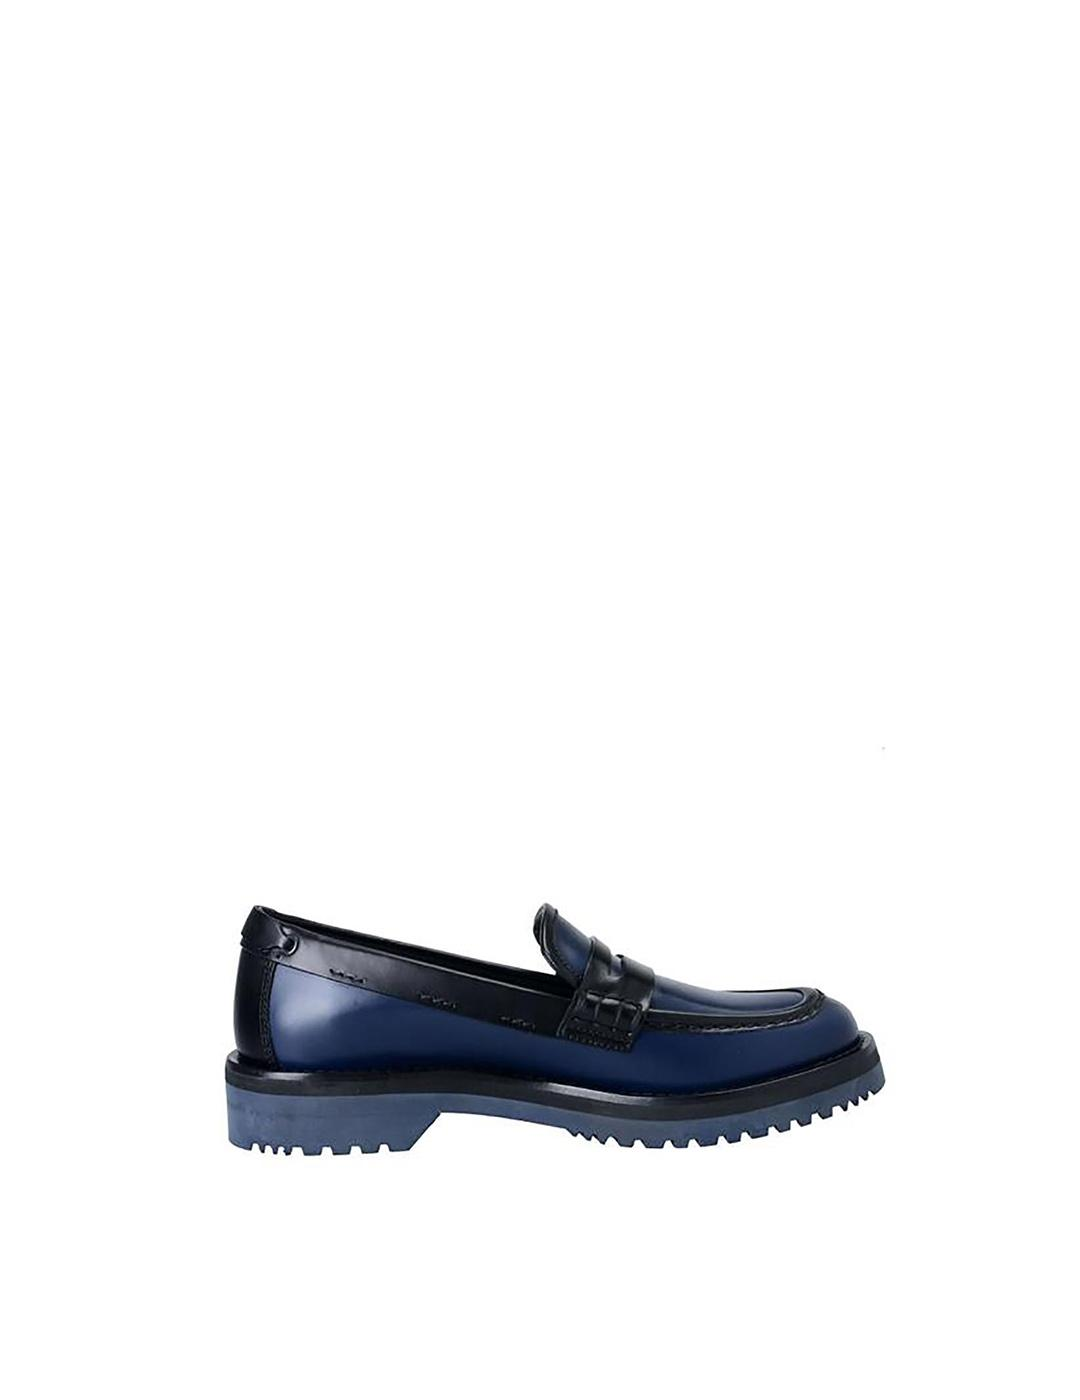 Mocasines Car Shoe azul negro